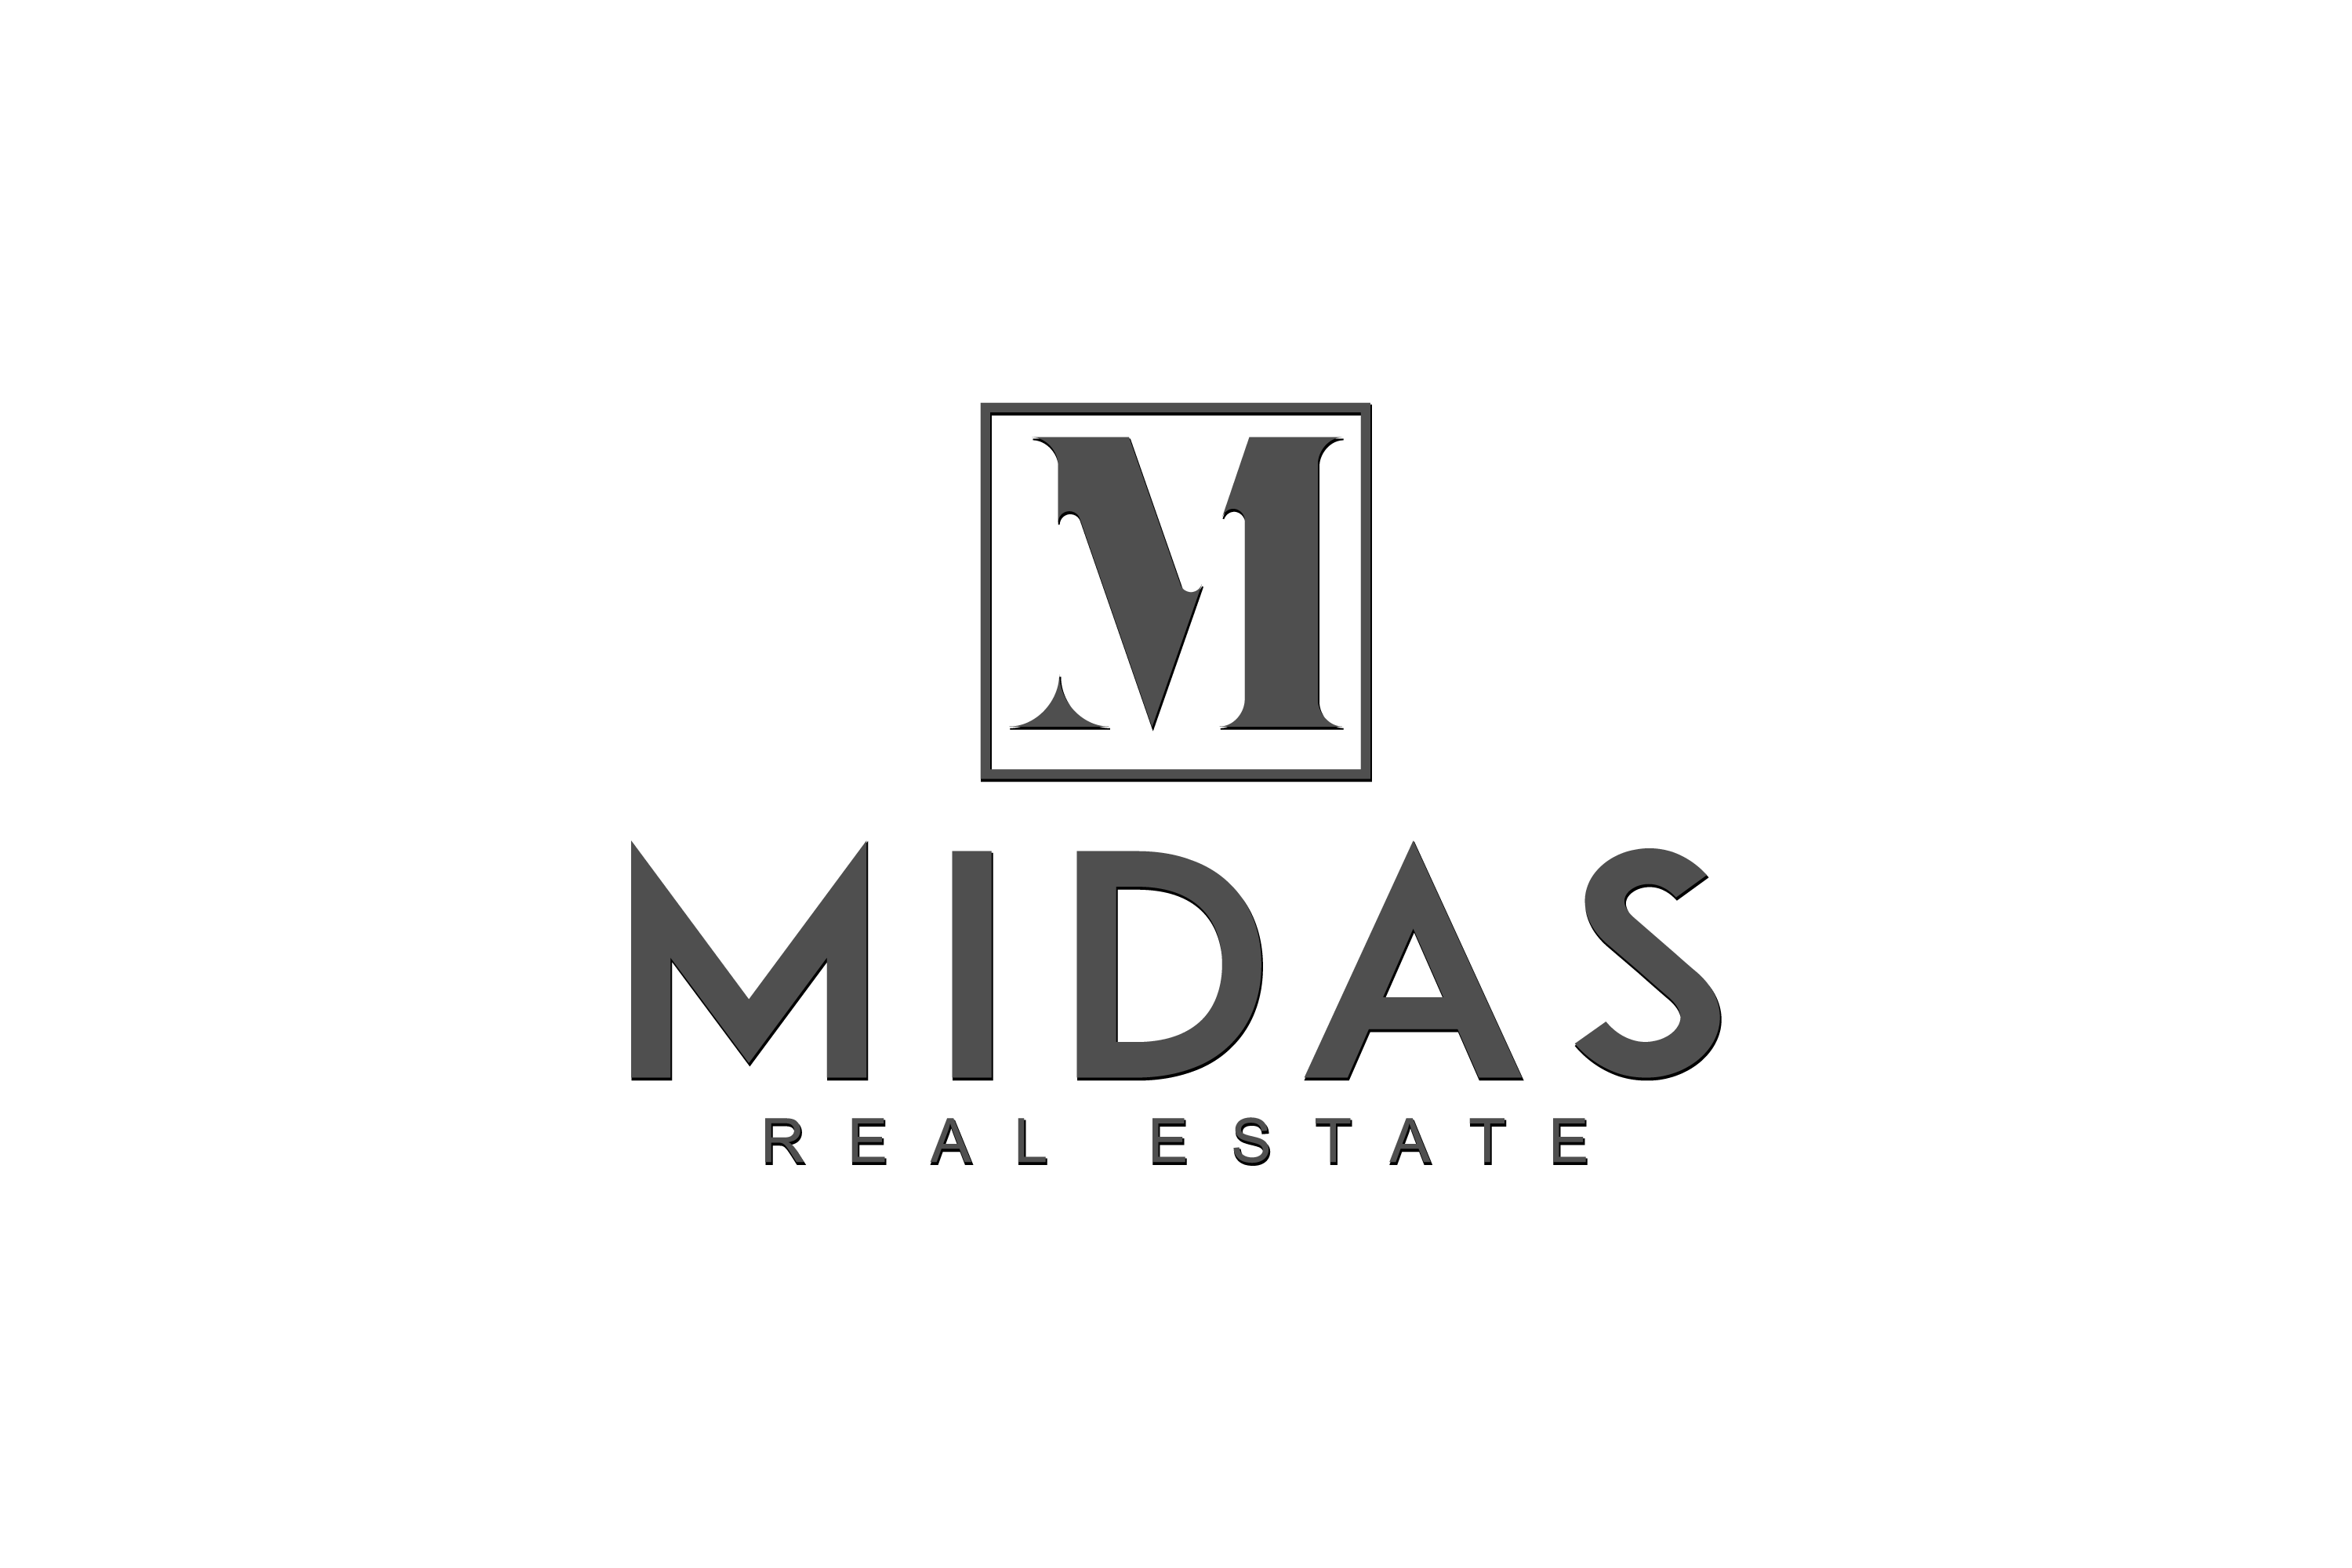 Midas Real Estate